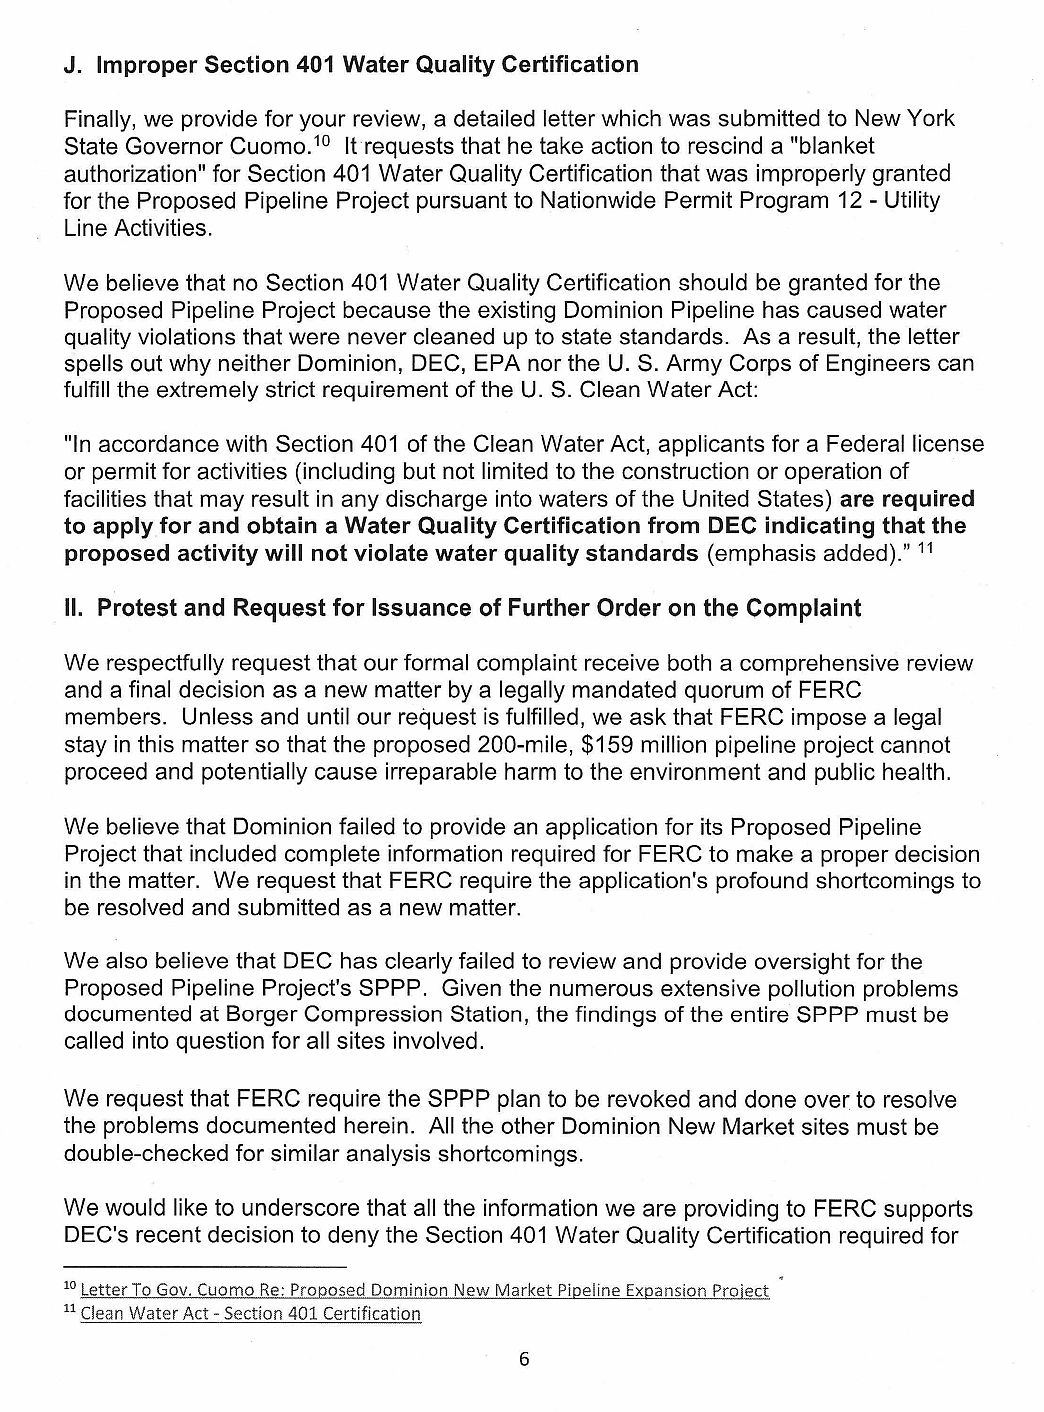 Letter From Town Of Dryden To Ferc Re Borger Compressor Station 3